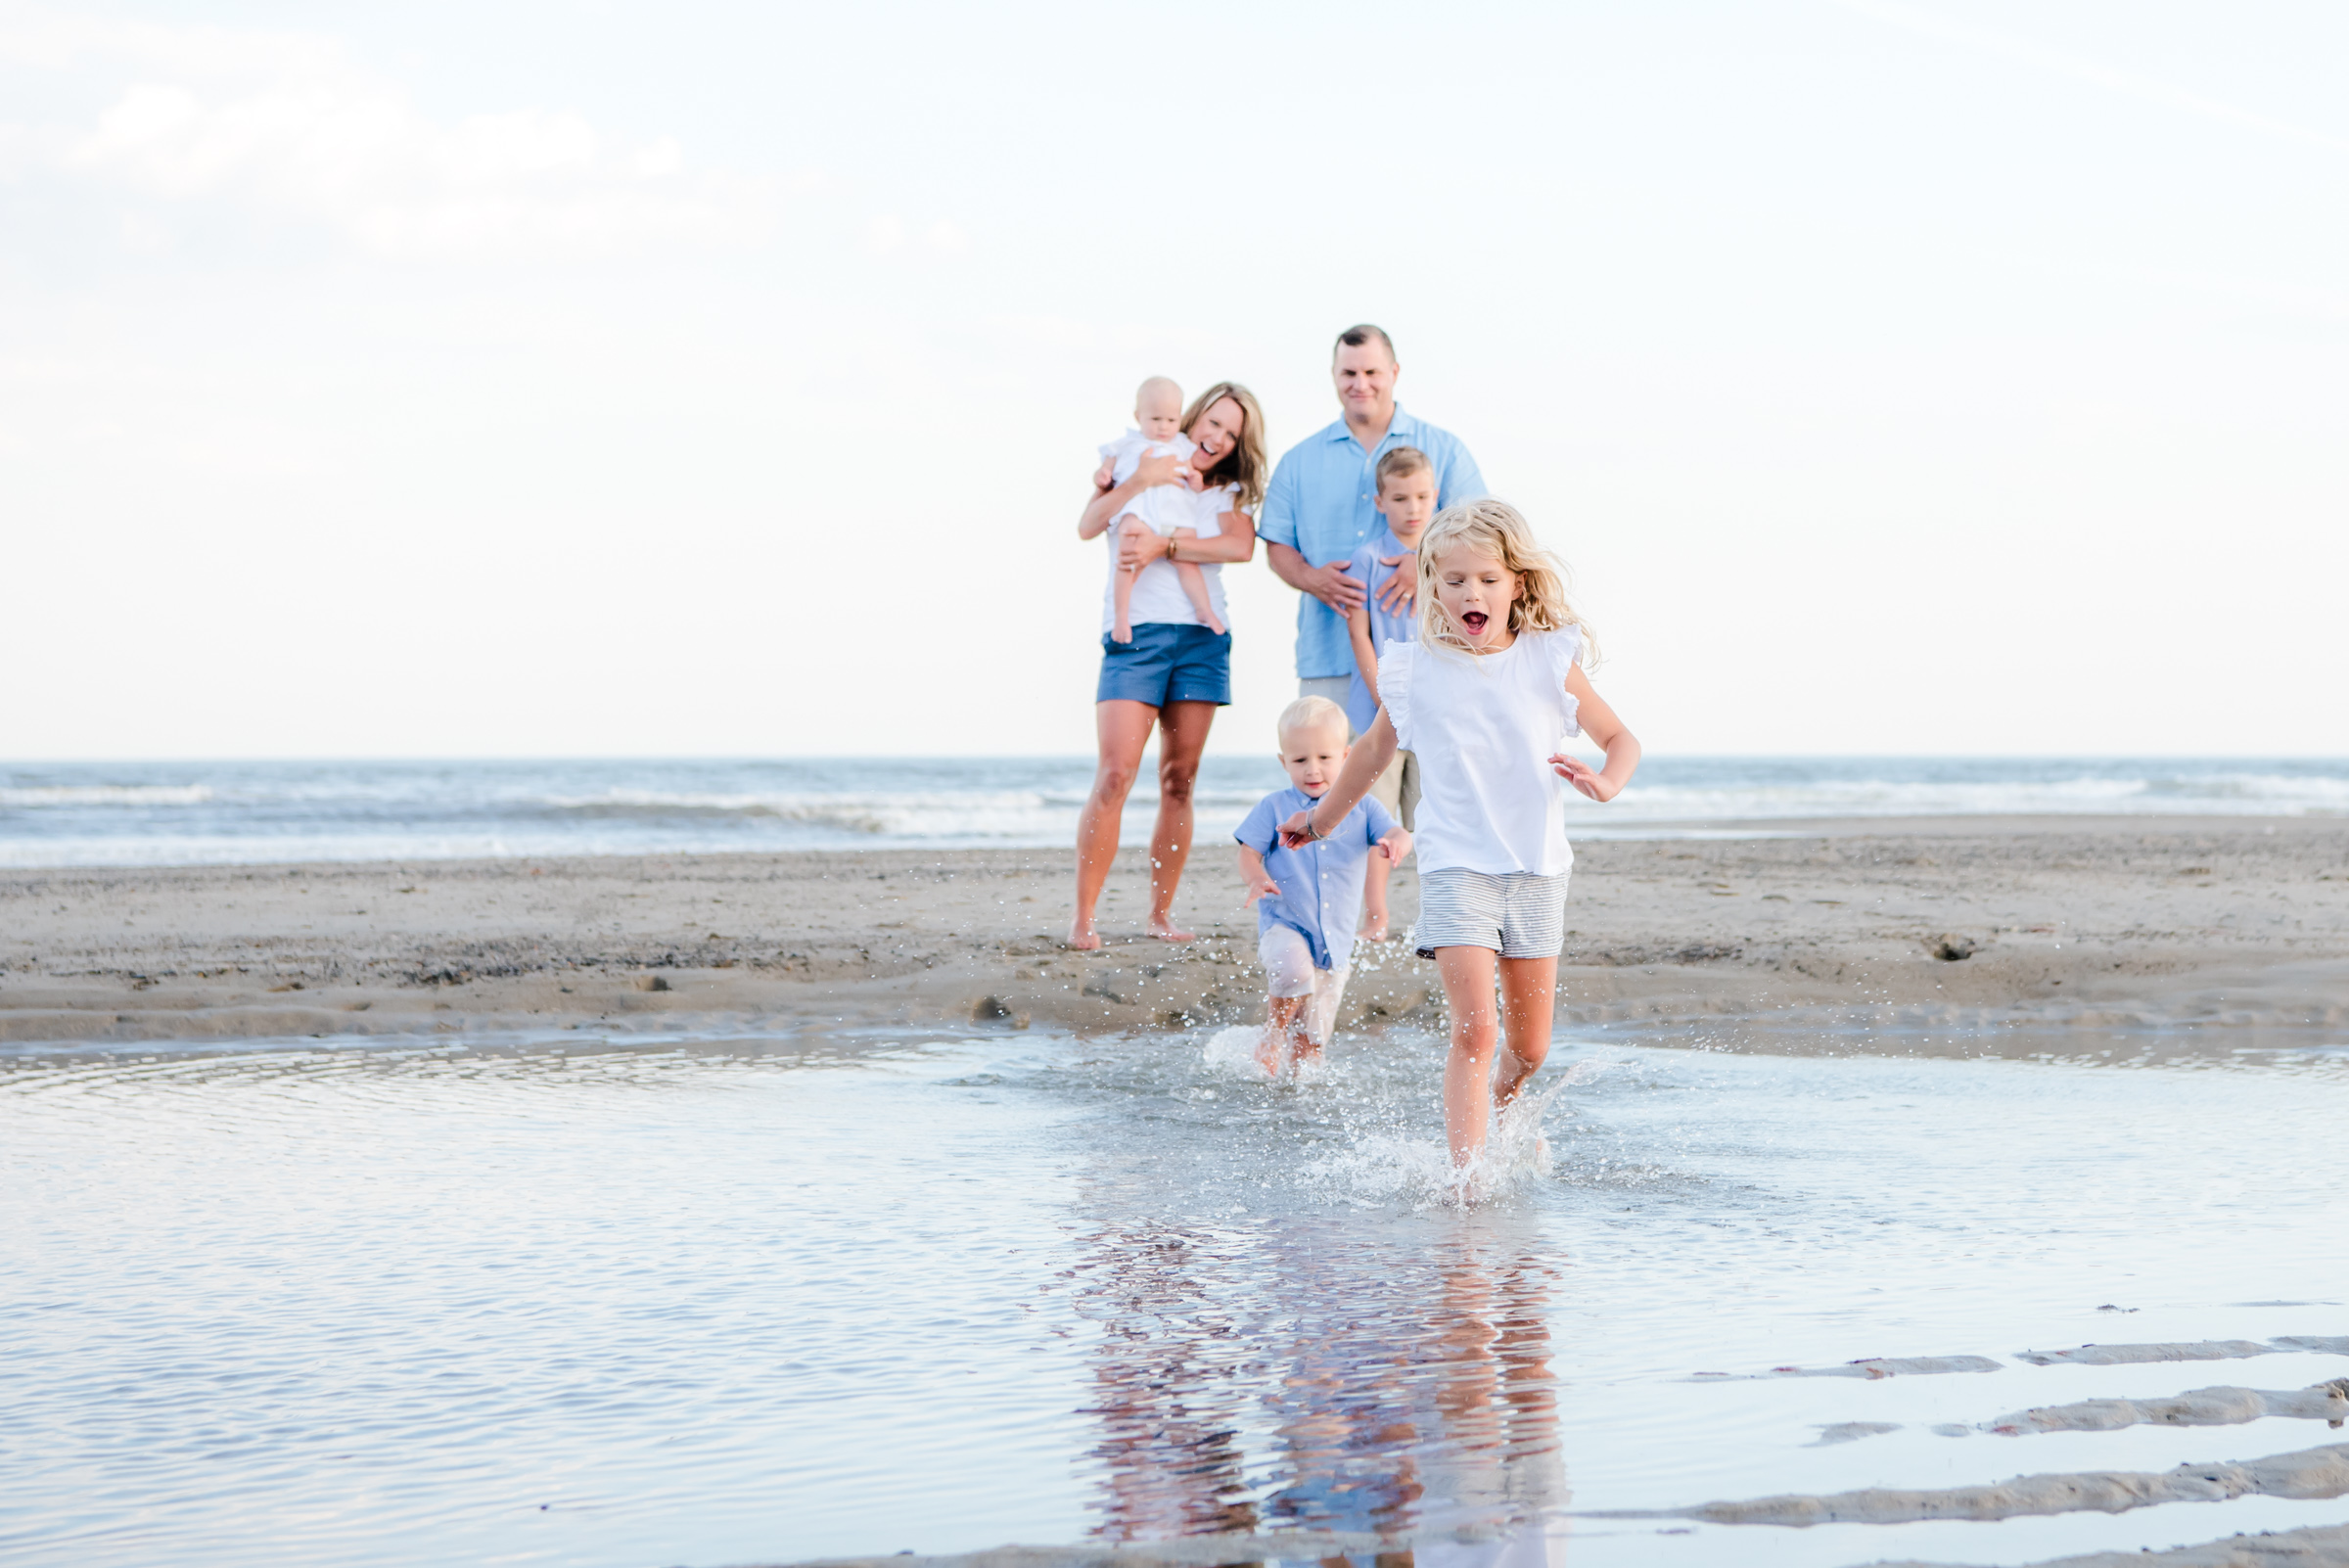 Familybeachsession.Patienceclevelandphotography.kennebunk.maine.b2018-36